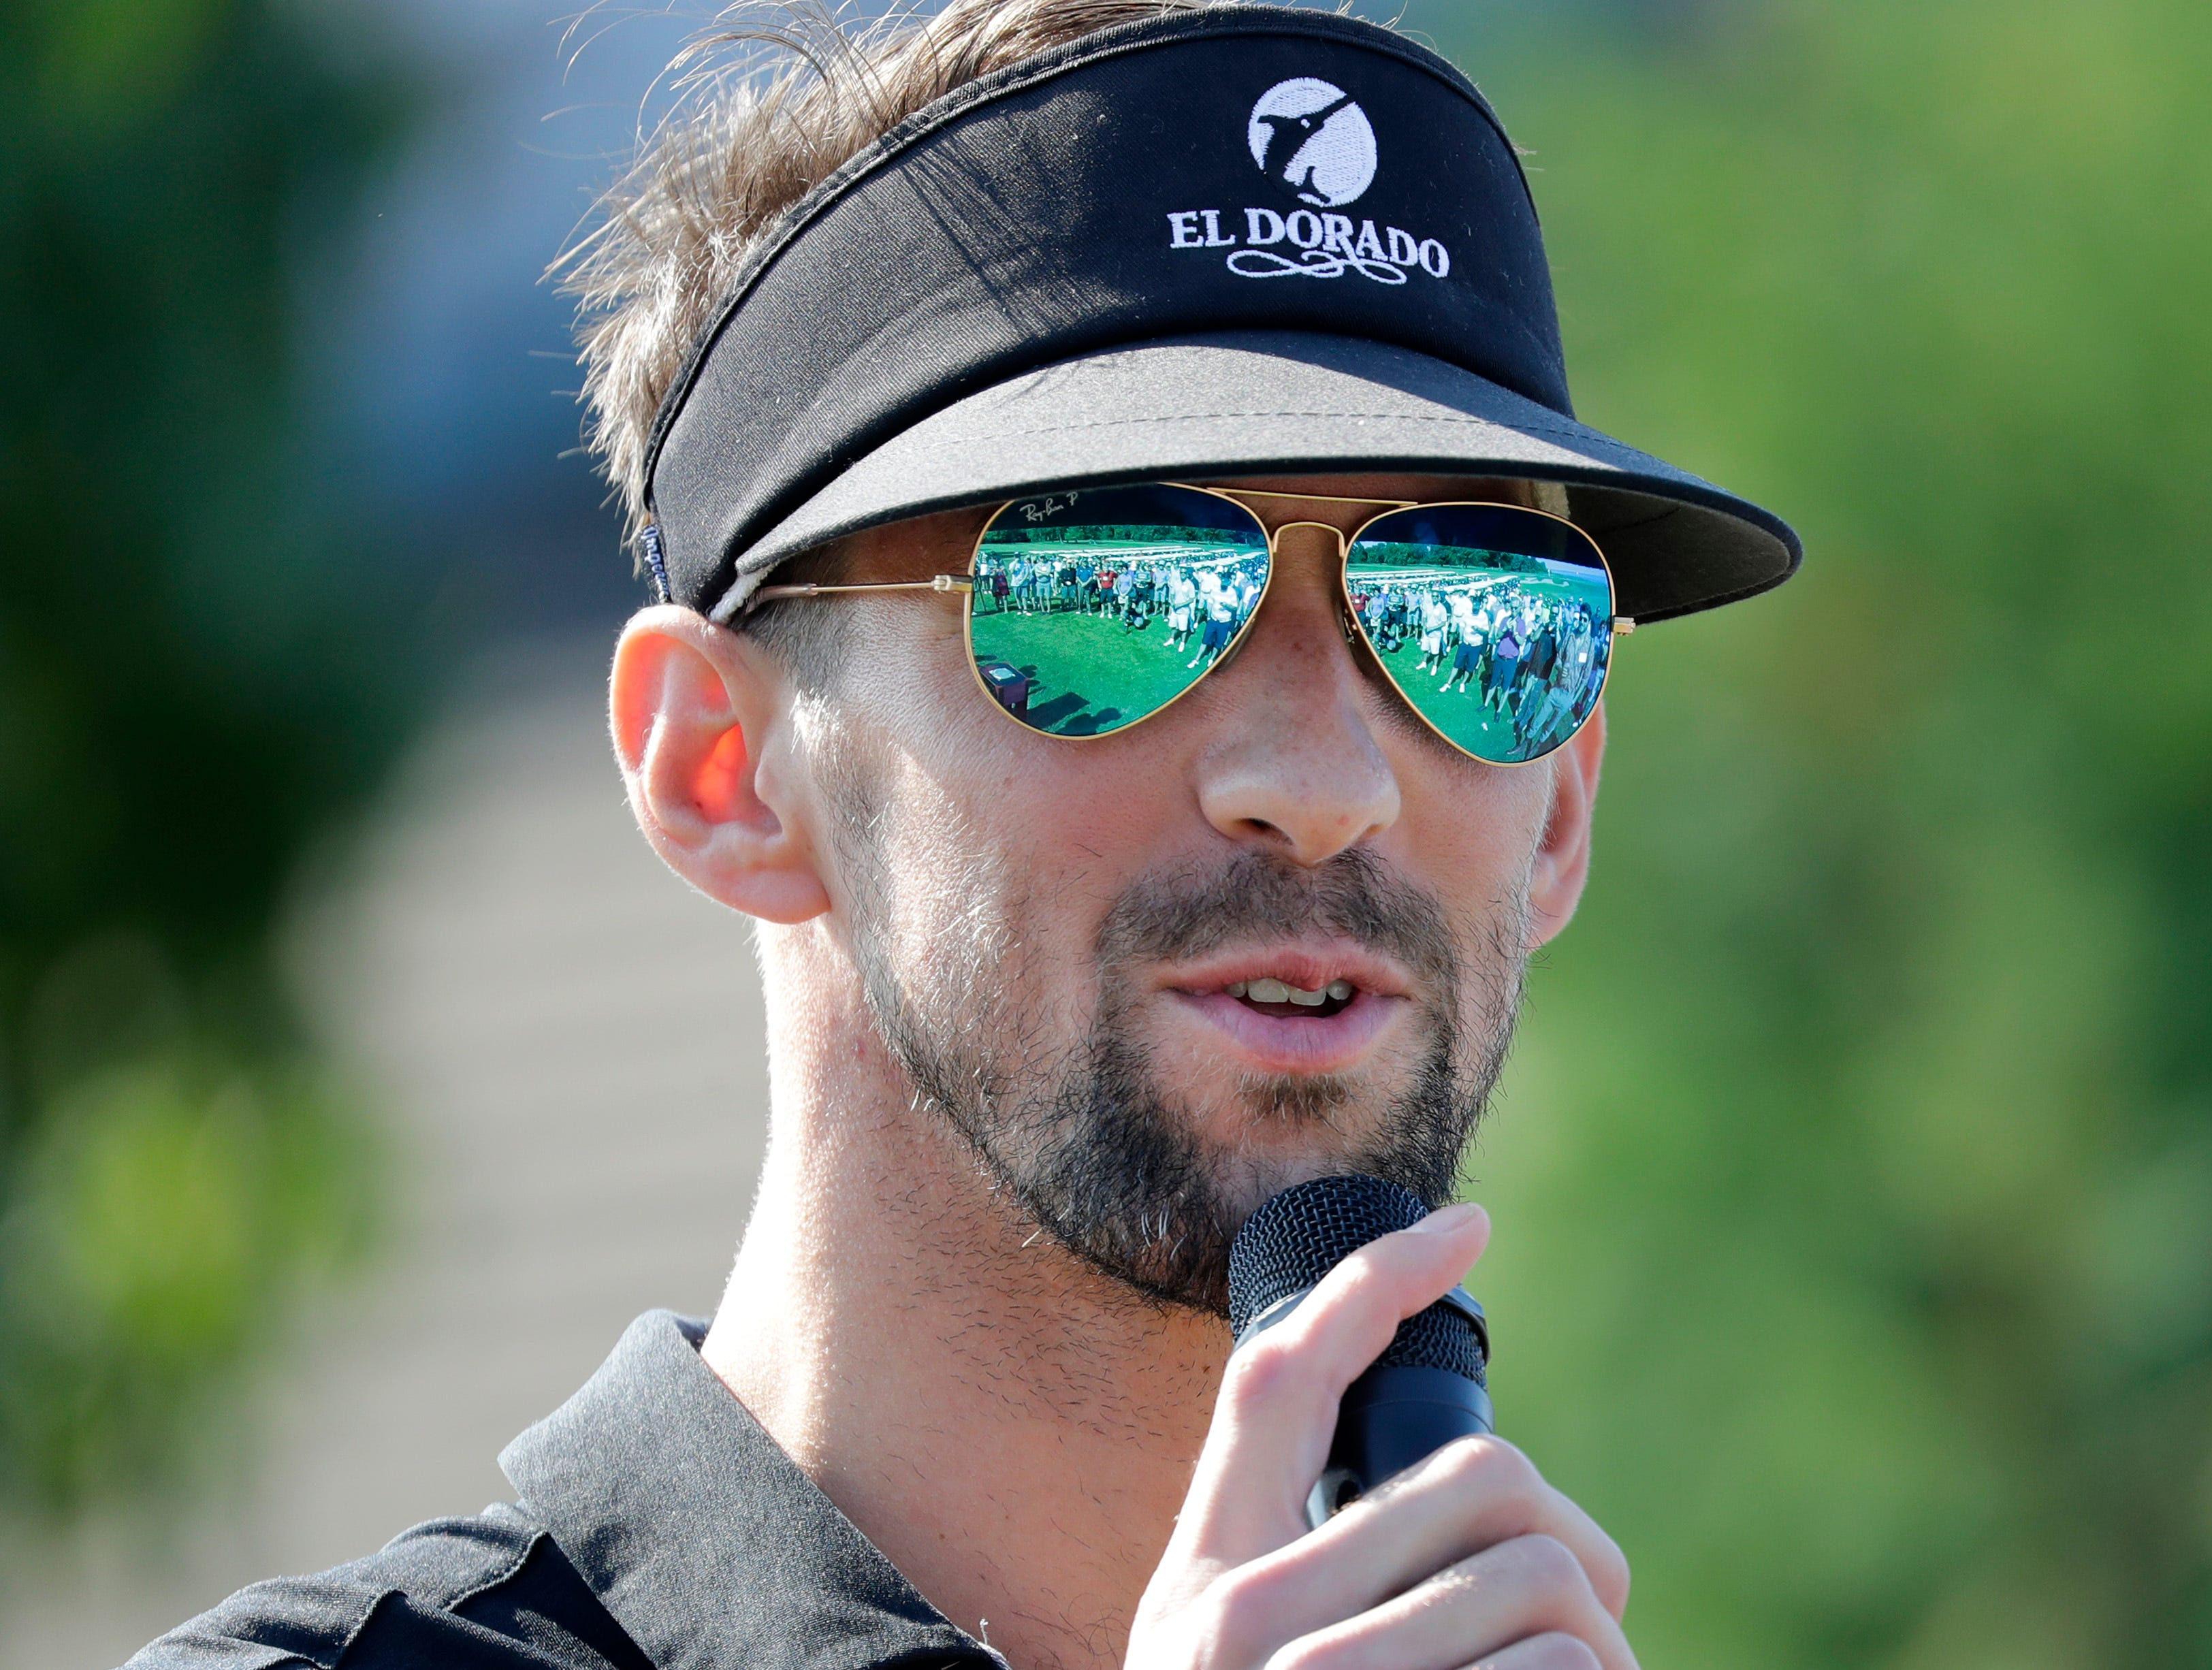 Michael Phelps gives the opening remarks before the start of the U.S. Venture Open Wednesday, Aug. 8, 2018, at North Shore Golf Club in Menasha, Wis.